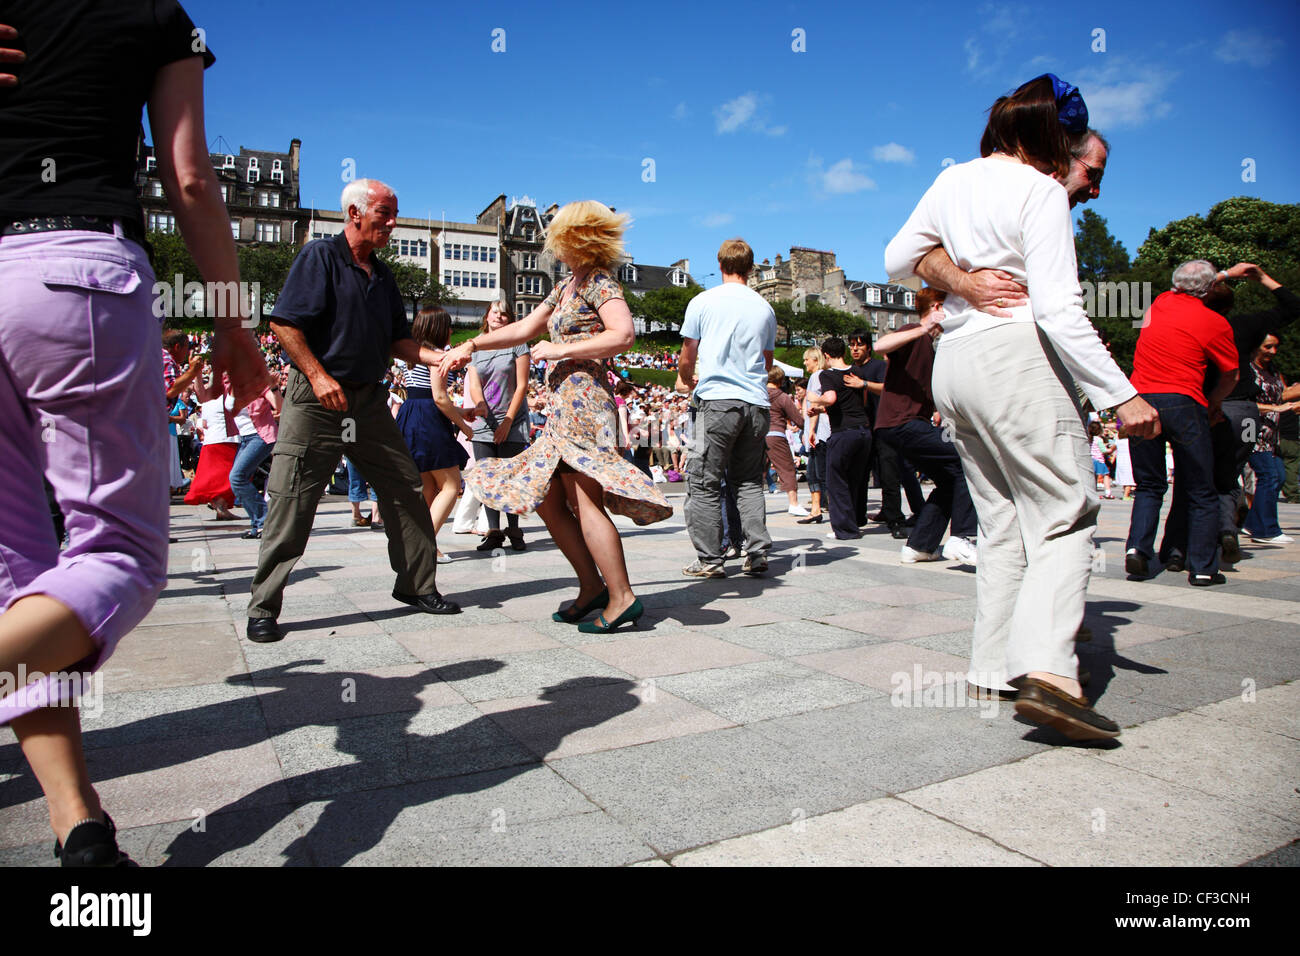 People dancing in Princes Street Gardens at the Edinburgh Jazz & Blues Festival. - Stock Image